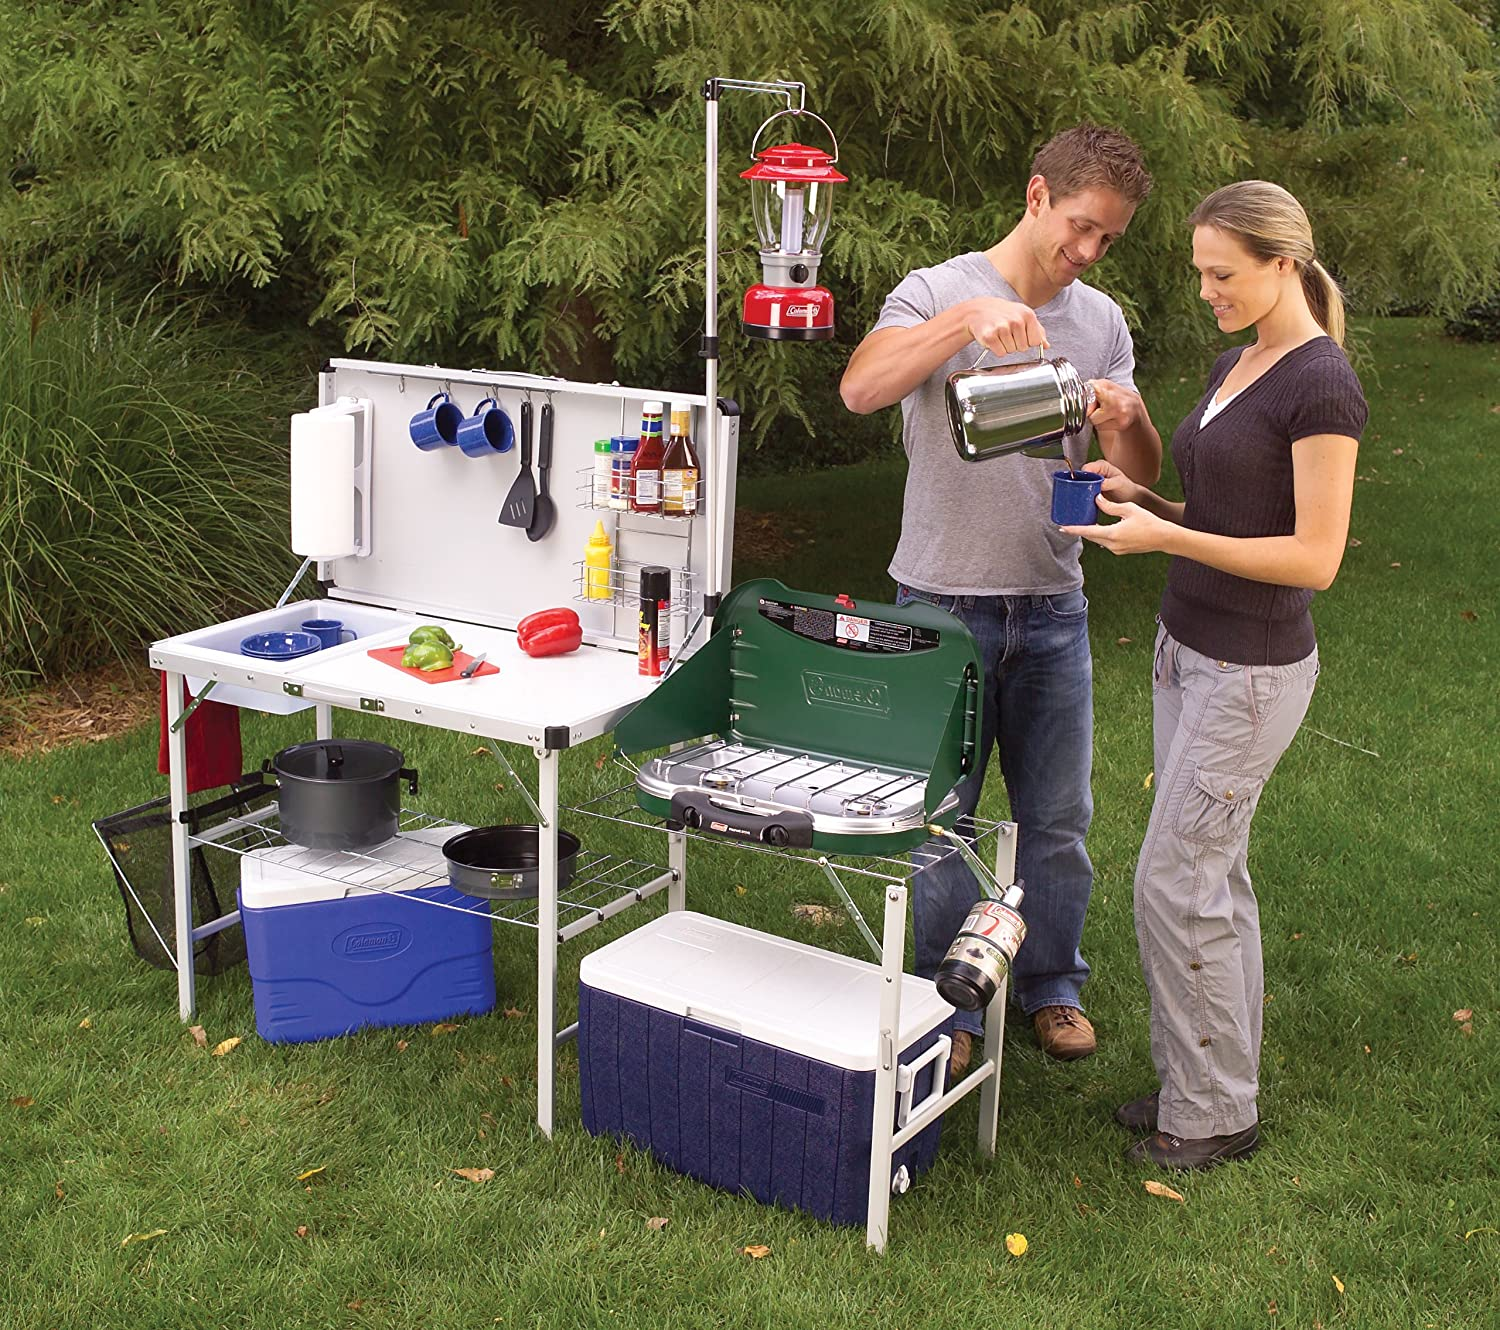 Grub hub camp kitchen for Kitchen set portable